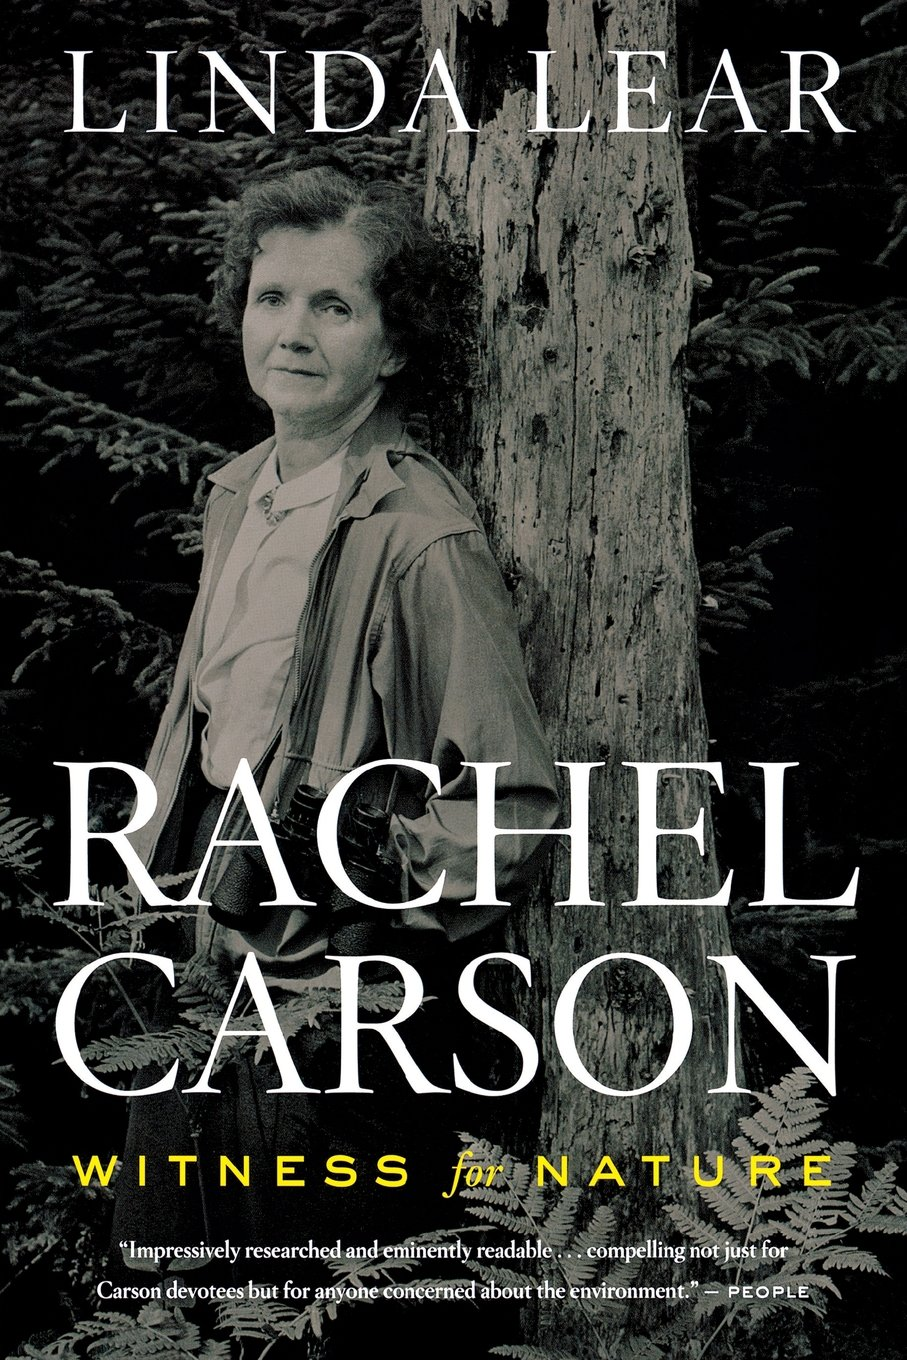 rachel carson witness for nature linda lear  rachel carson witness for nature linda lear 9780547238234 com books